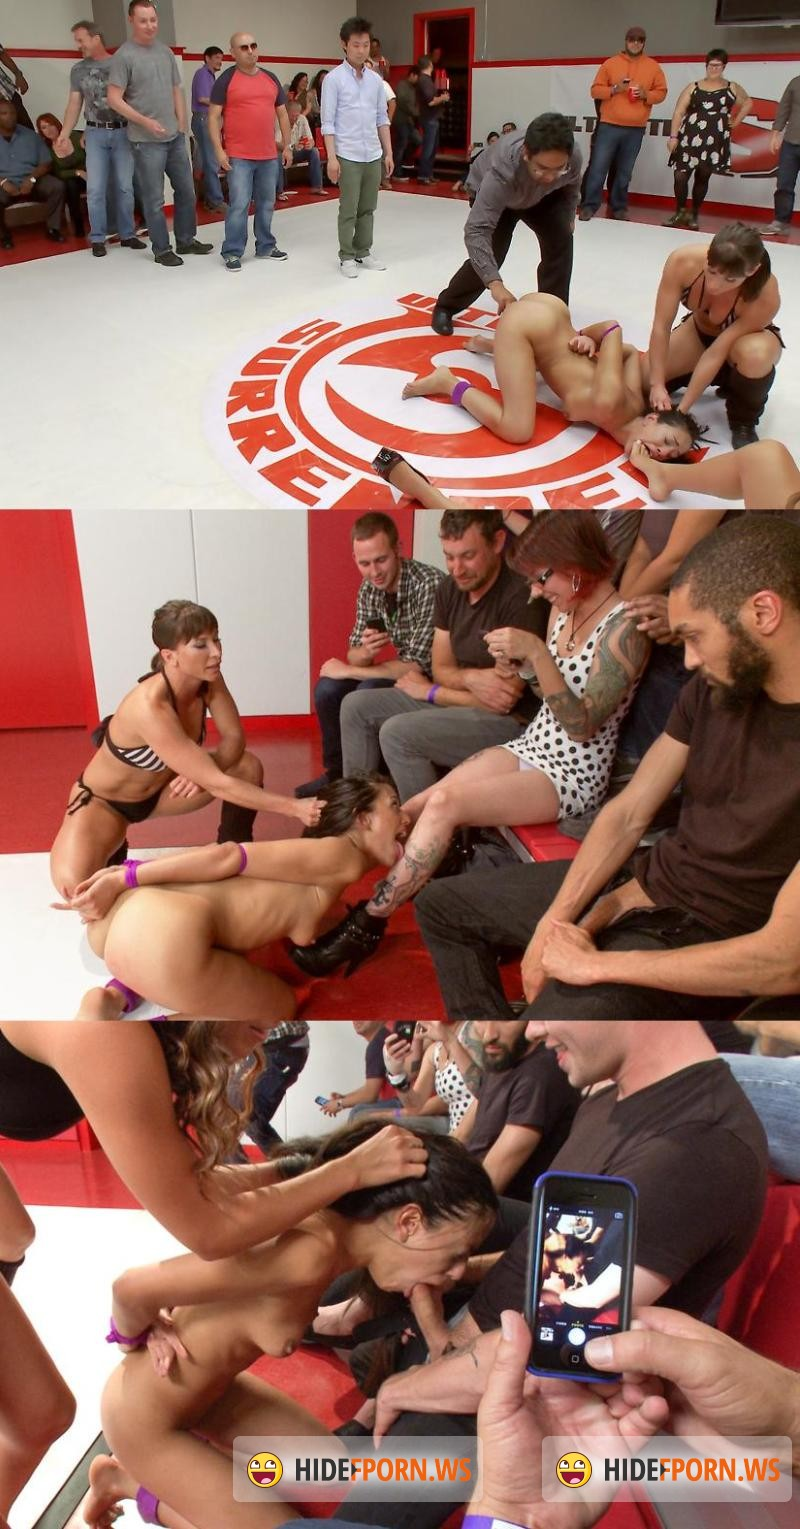 Lyla Storm - Loser Humiliated By The Audience For Sucking So Bad [HD 720p]